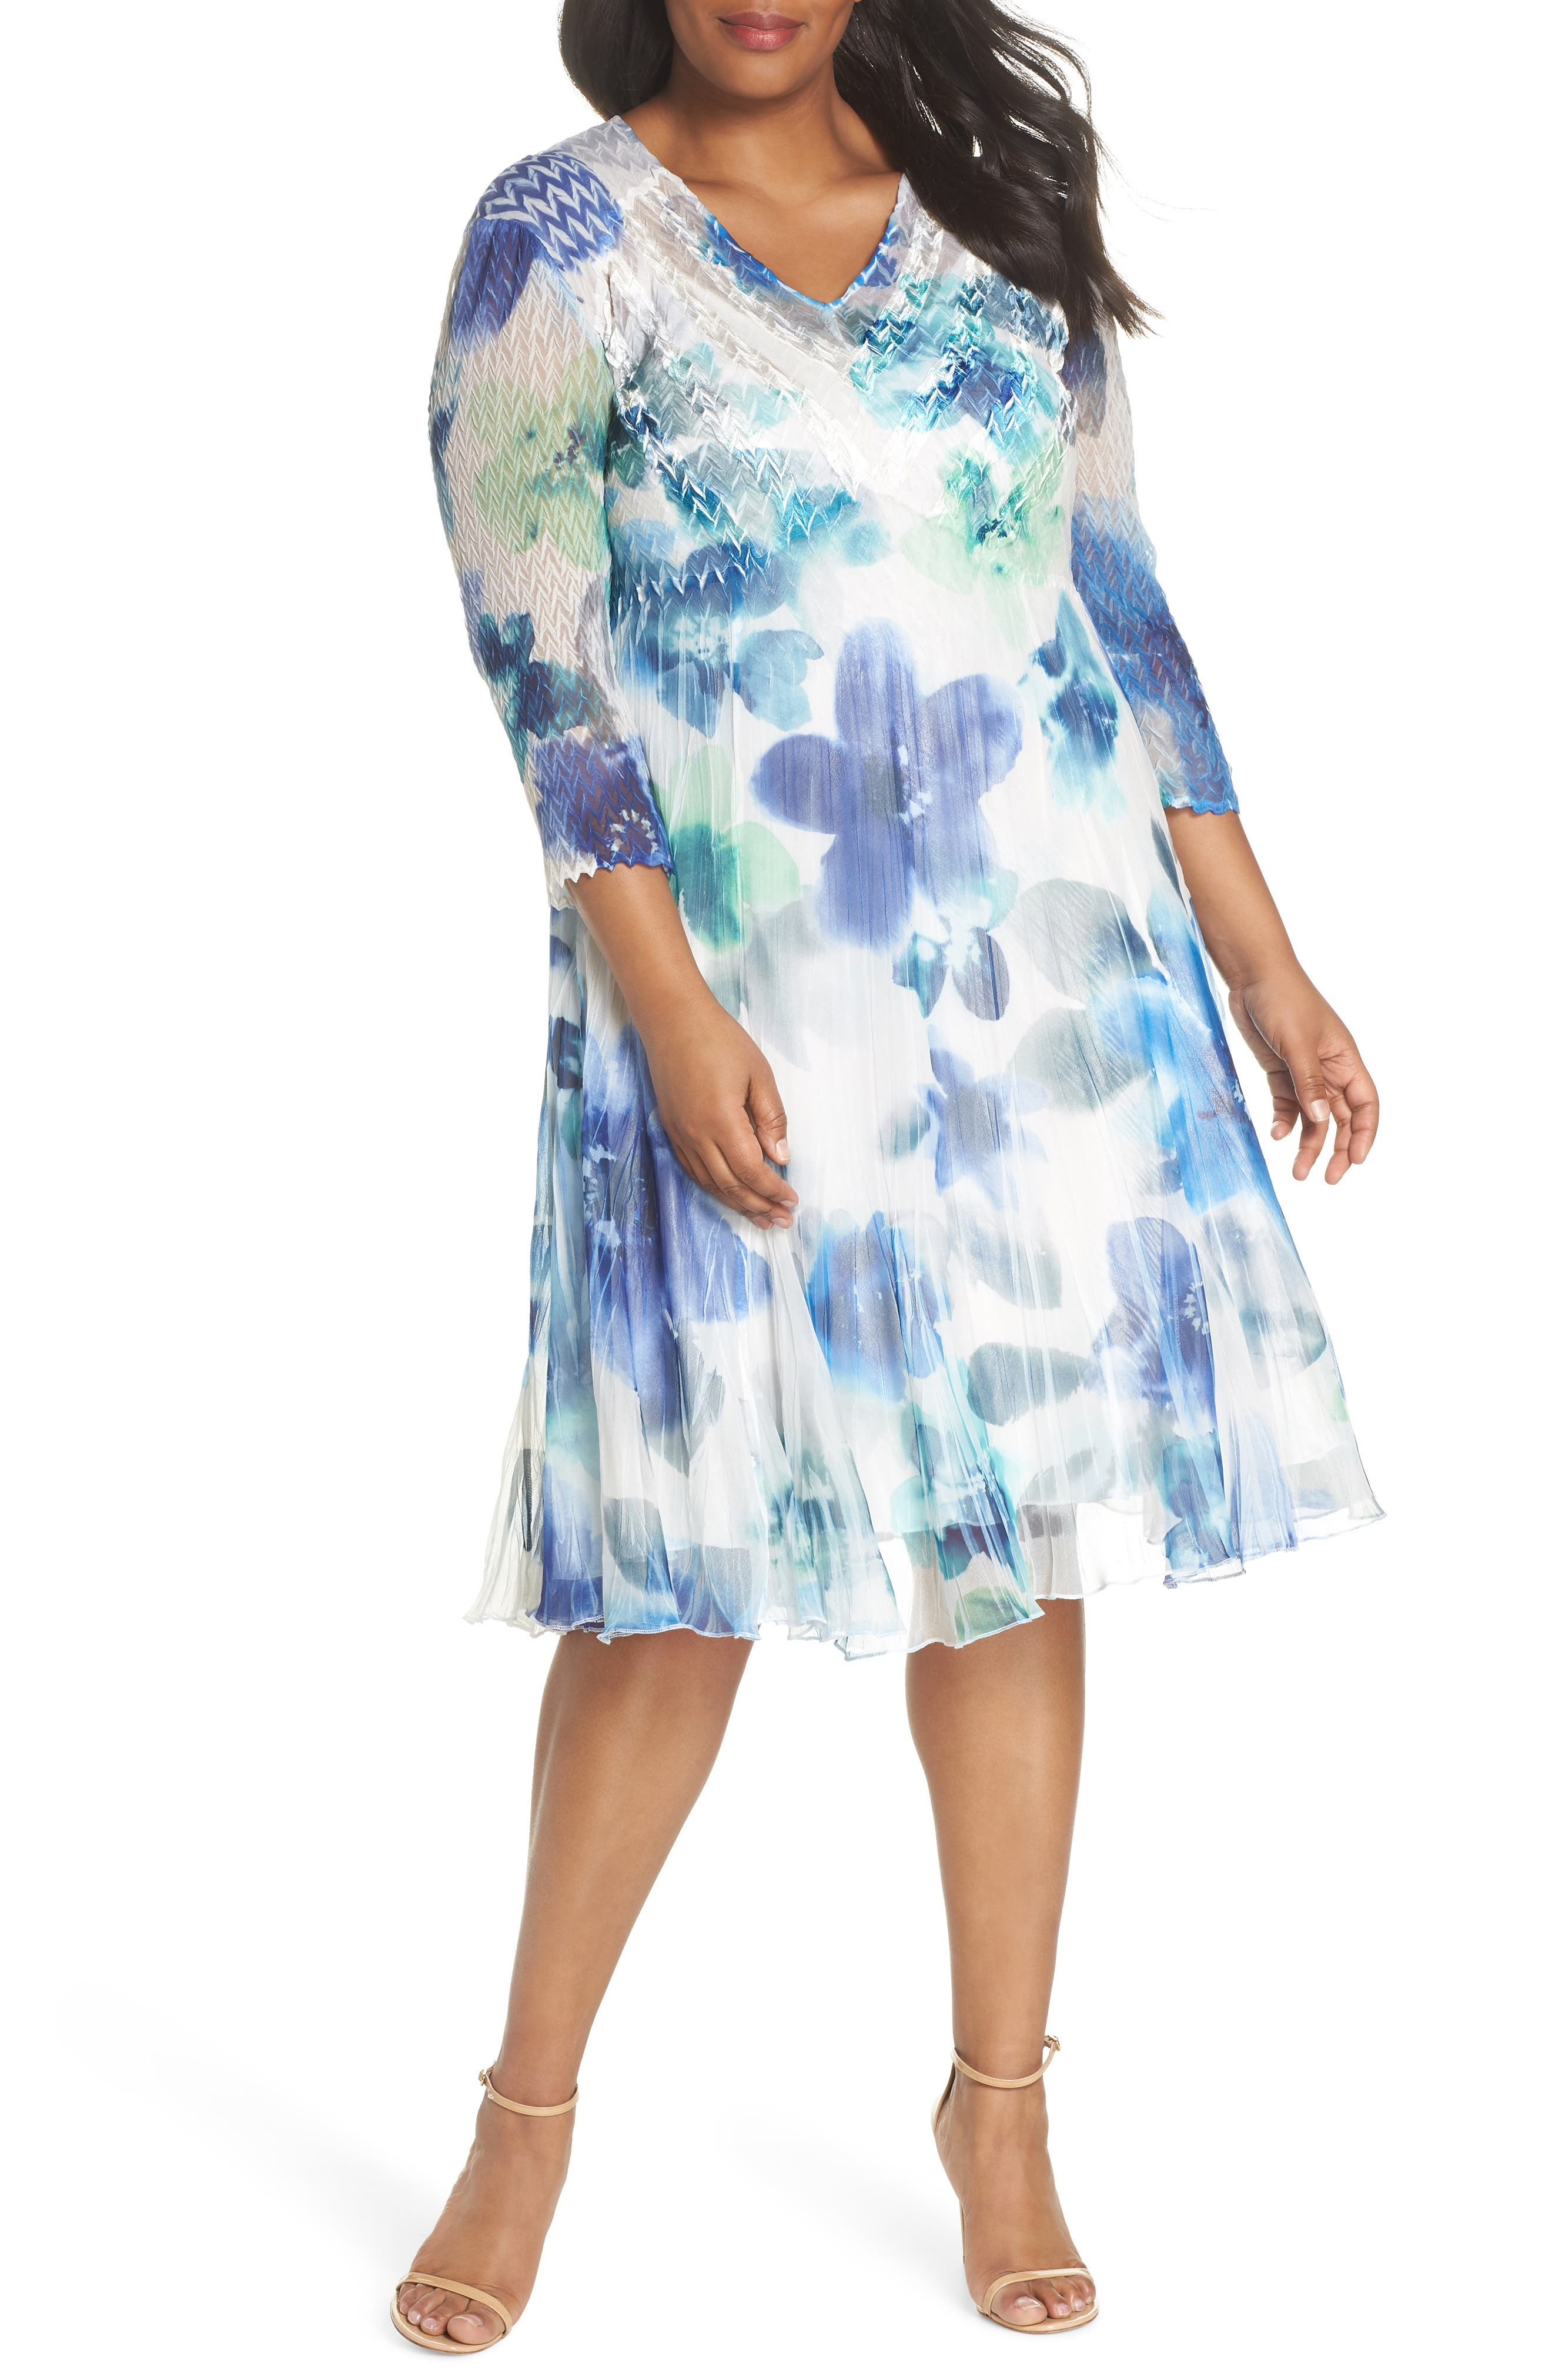 Alternate Image 1 Selected - Komarov Floral Chiffon A-Line Dress (Plus Size)